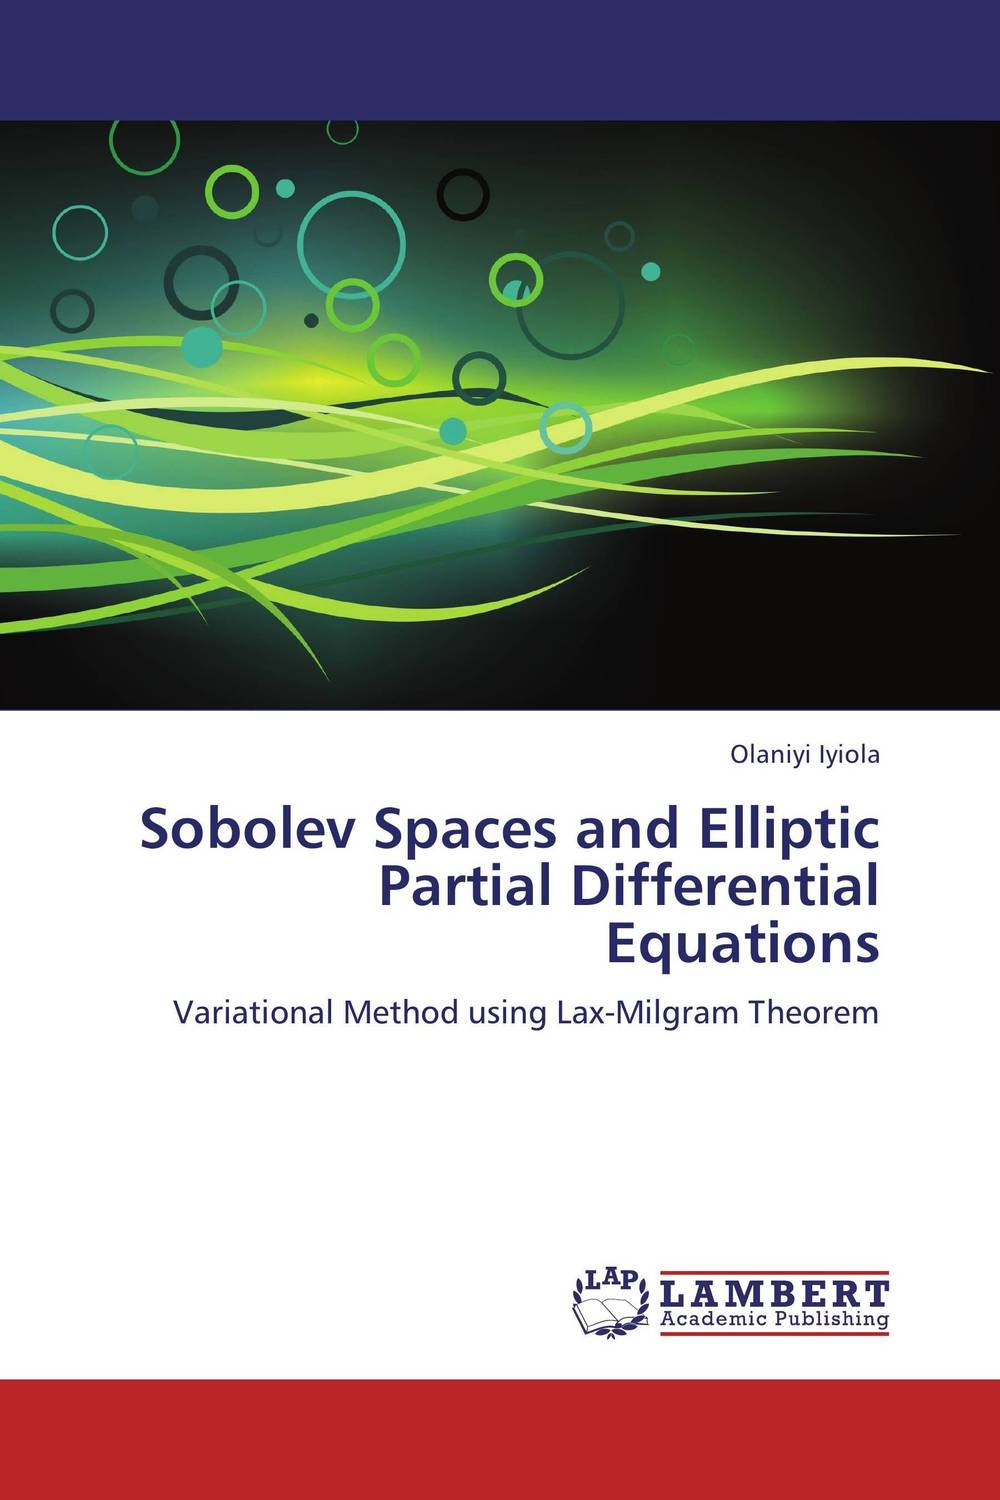 Sobolev Spaces and Elliptic Partial Differential Equations